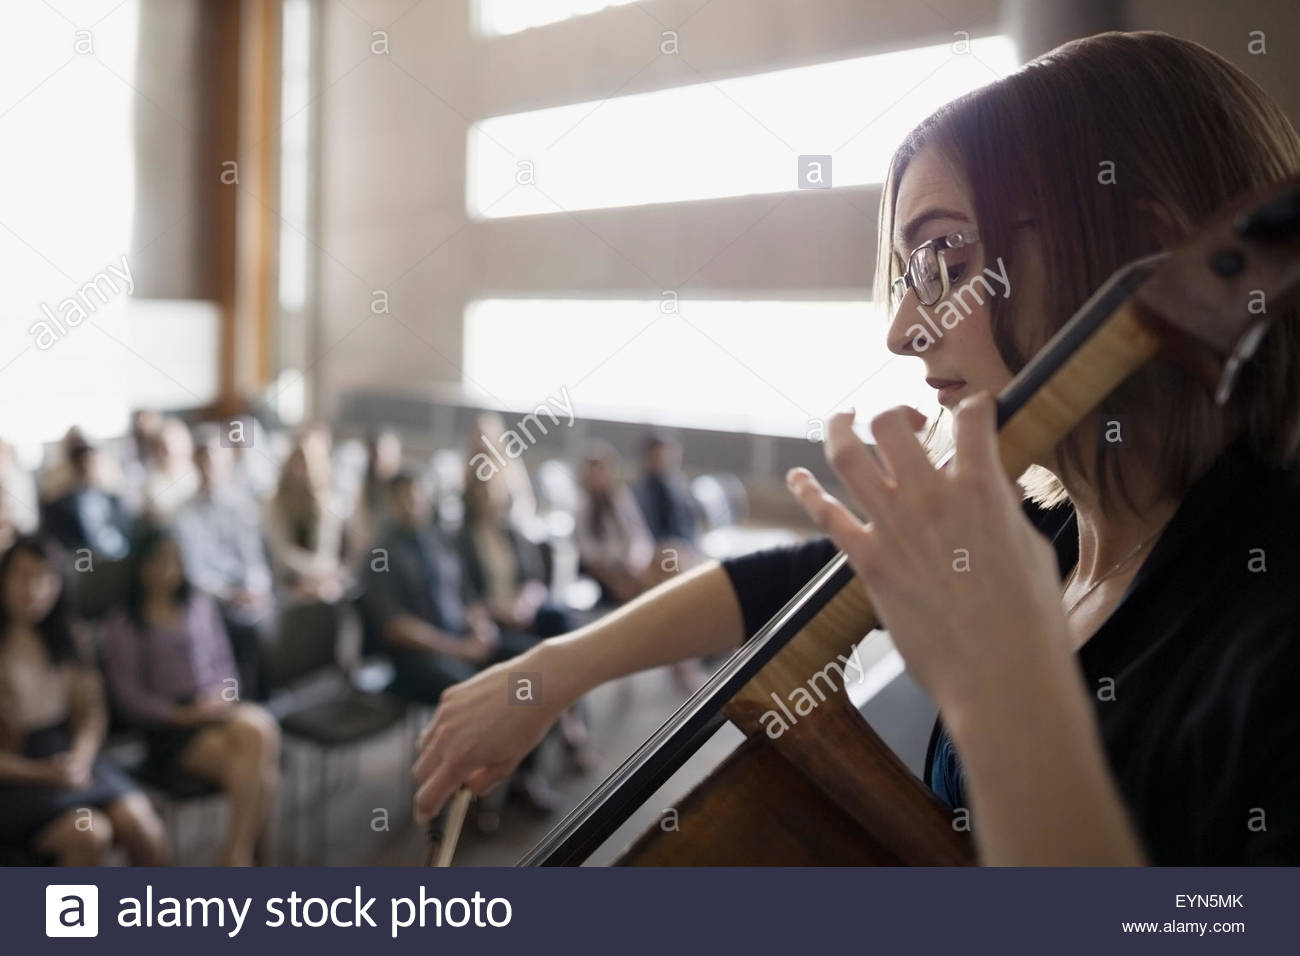 Female cellist performing for audience in auditorium - Stock Image